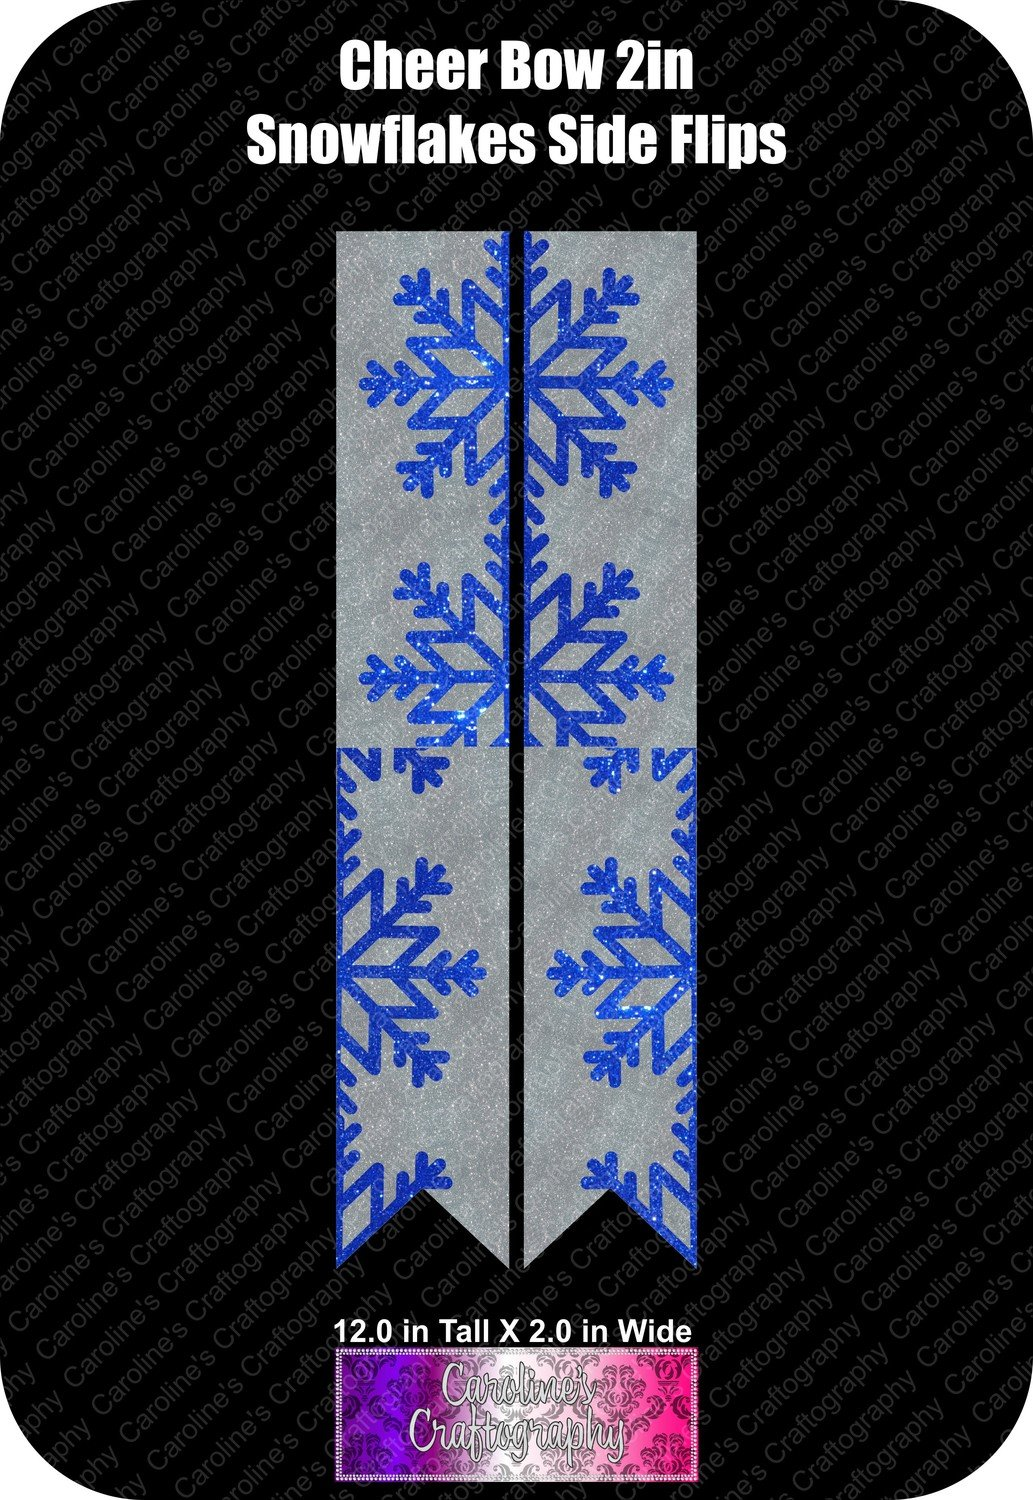 Snowflakes Side Flips 2in Cheer Bow Vinyl